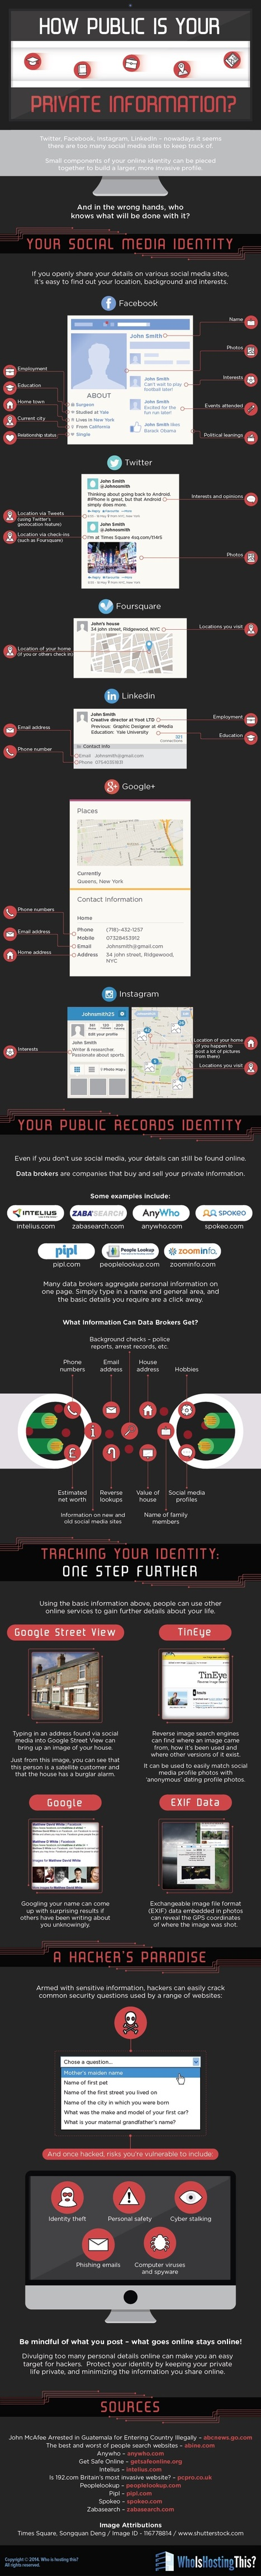 Your Social Data Might Not Be as Private as You Think [Infographic] | MarketingHits | Scoop.it